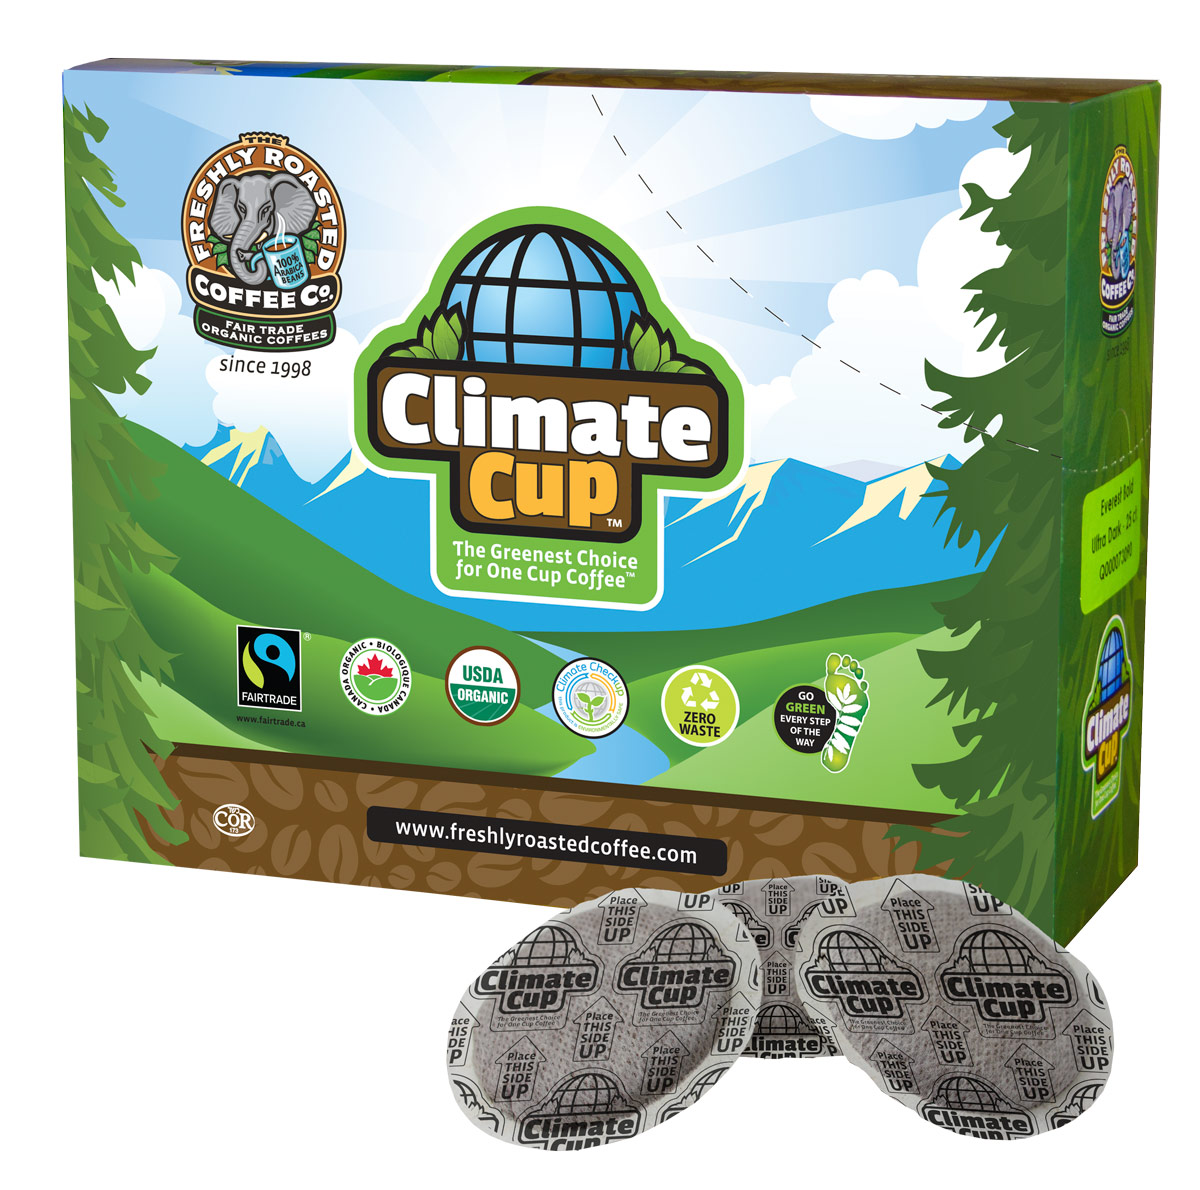 climate cup coffee package design by KAPOW Creative